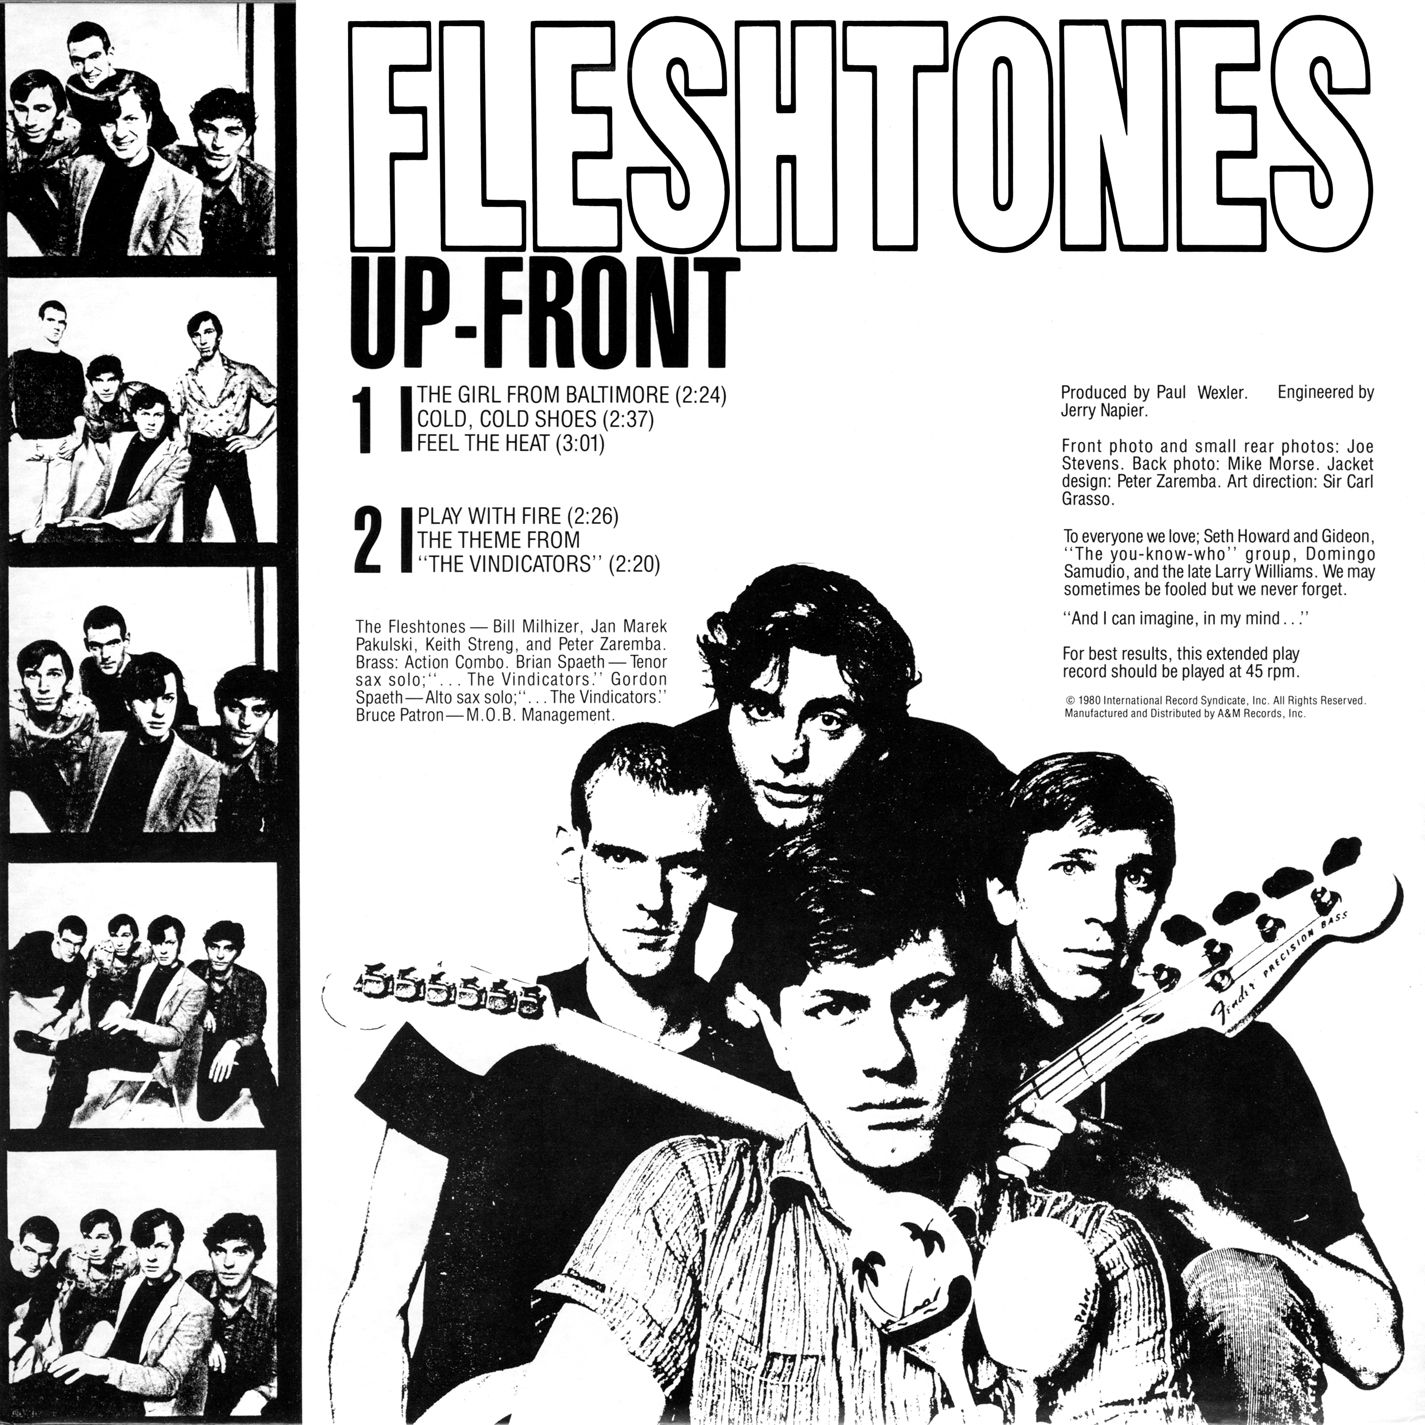 The Fleshtones - Up-Front - Inside. I love the song Col Cold Shoes ...